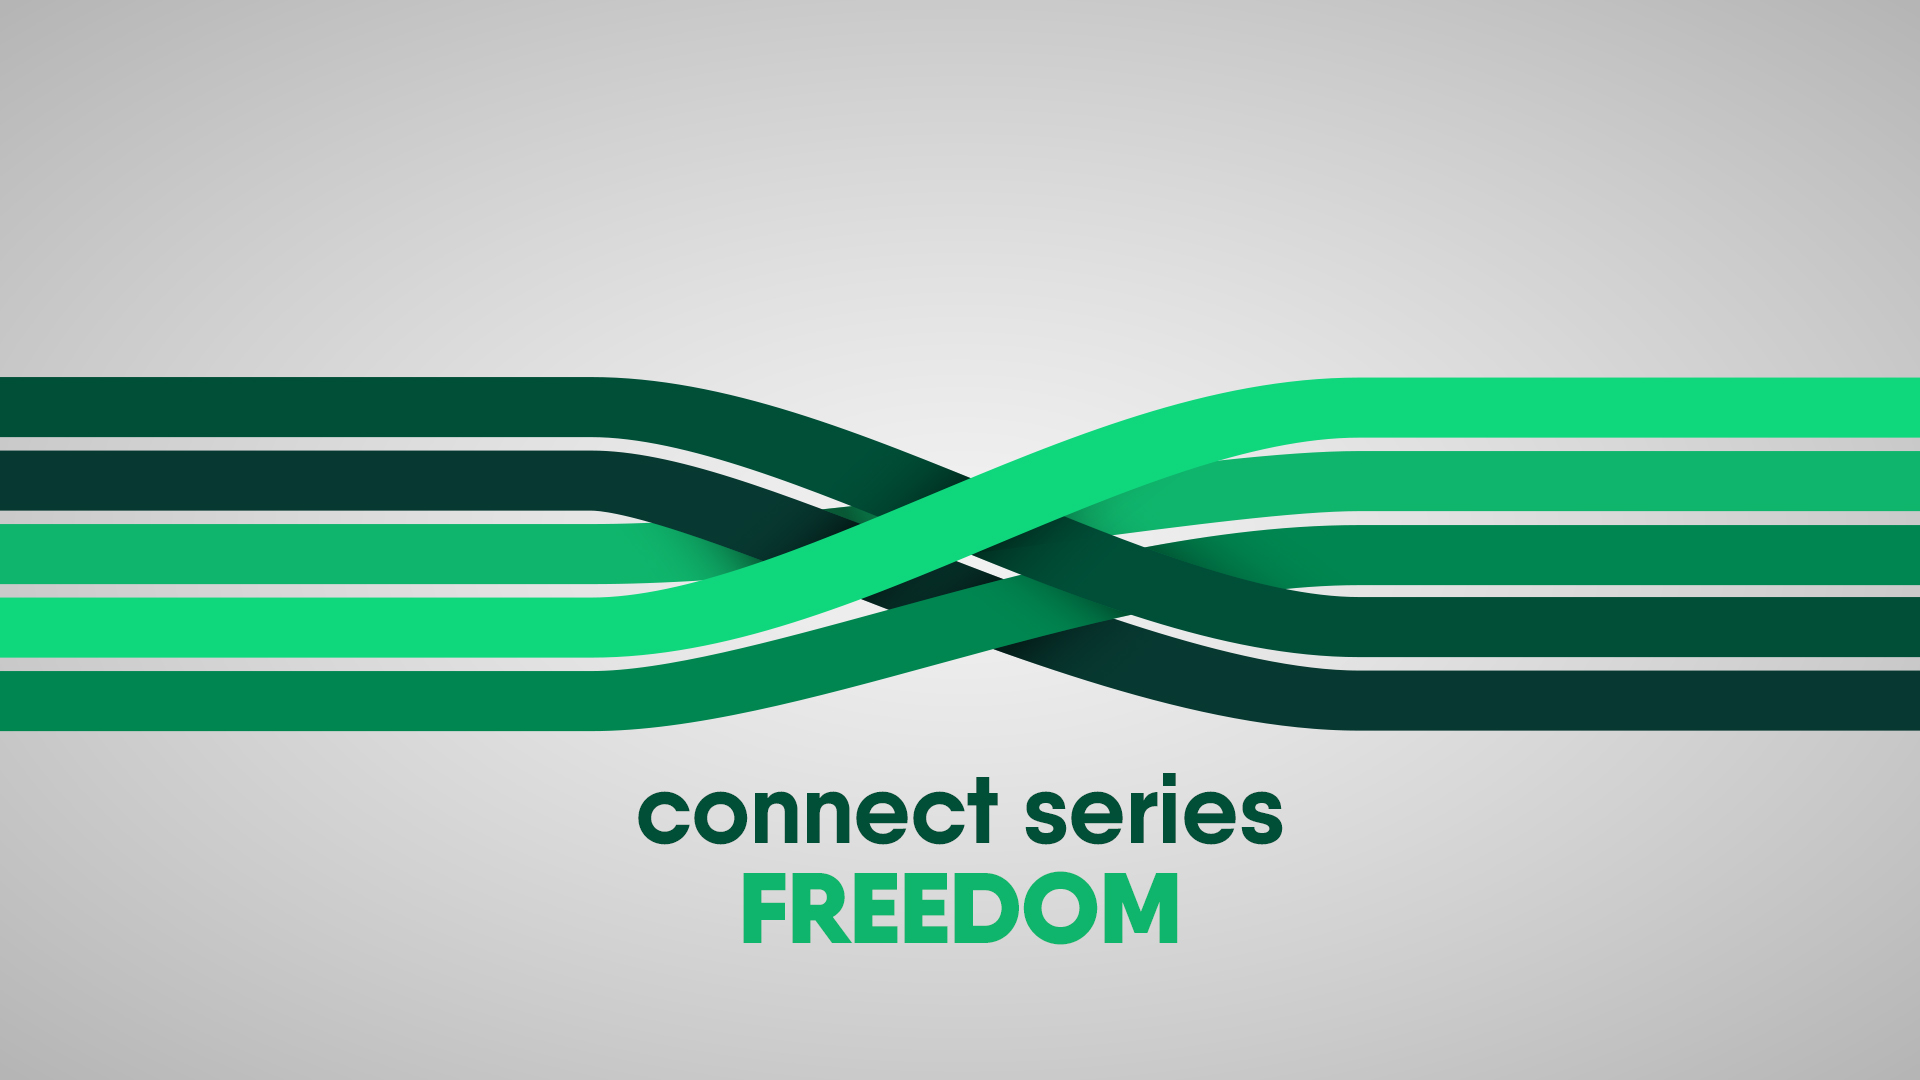 Connect Series - Freedom